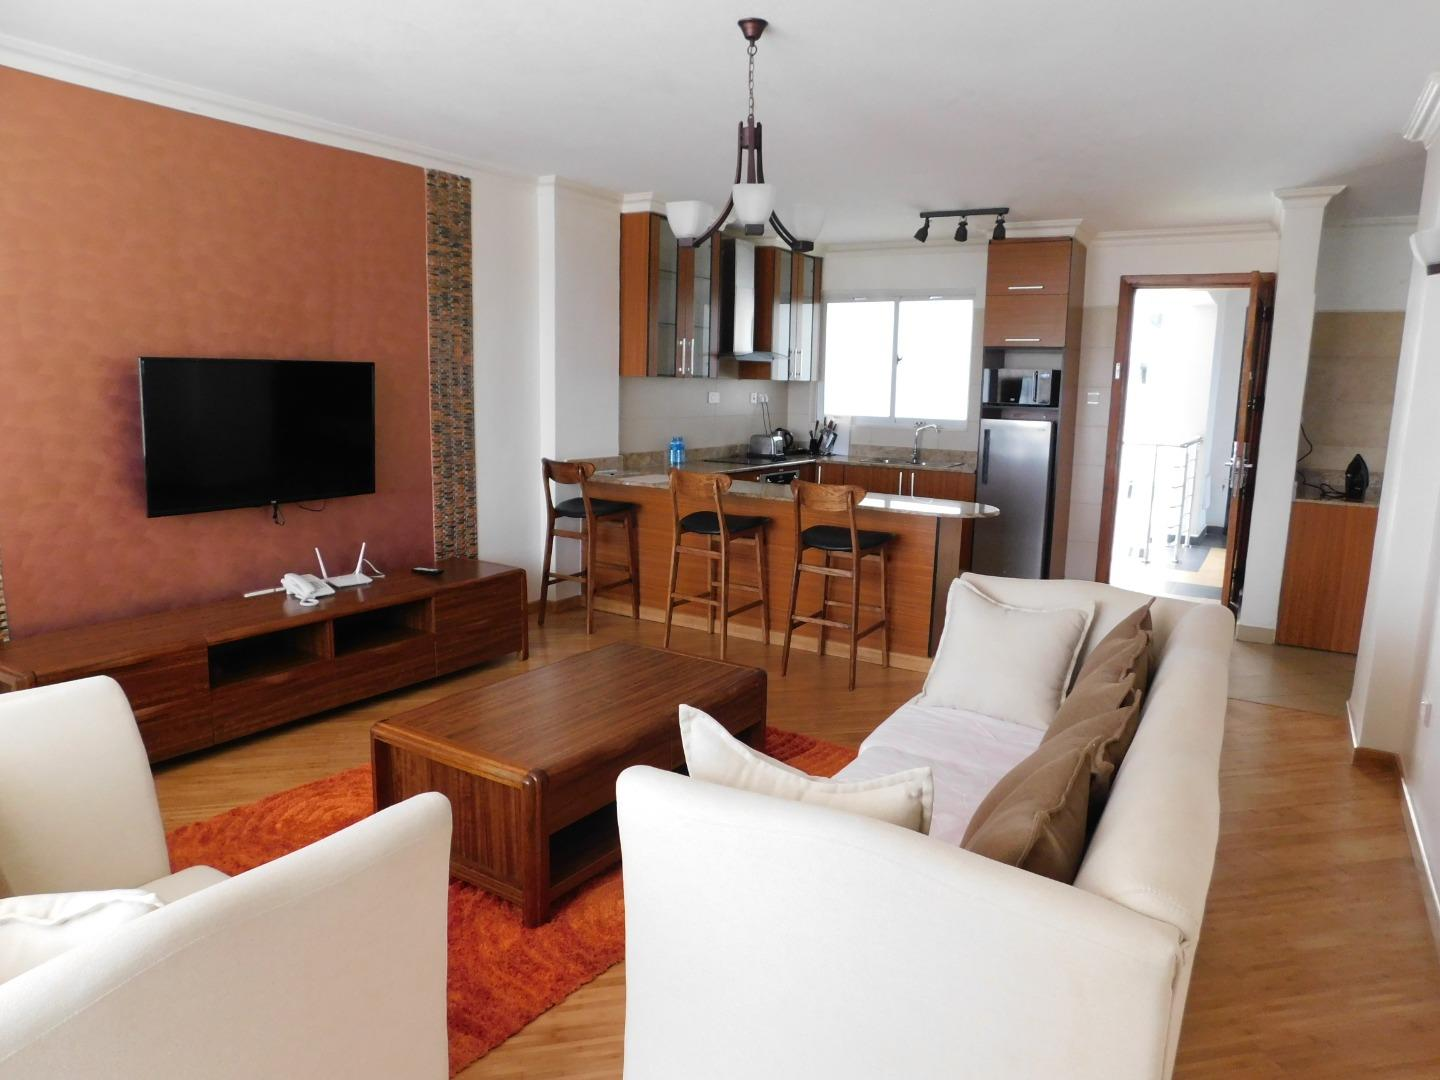 Executive 1 Bedroom fully Furnished To Let At Lymac suites